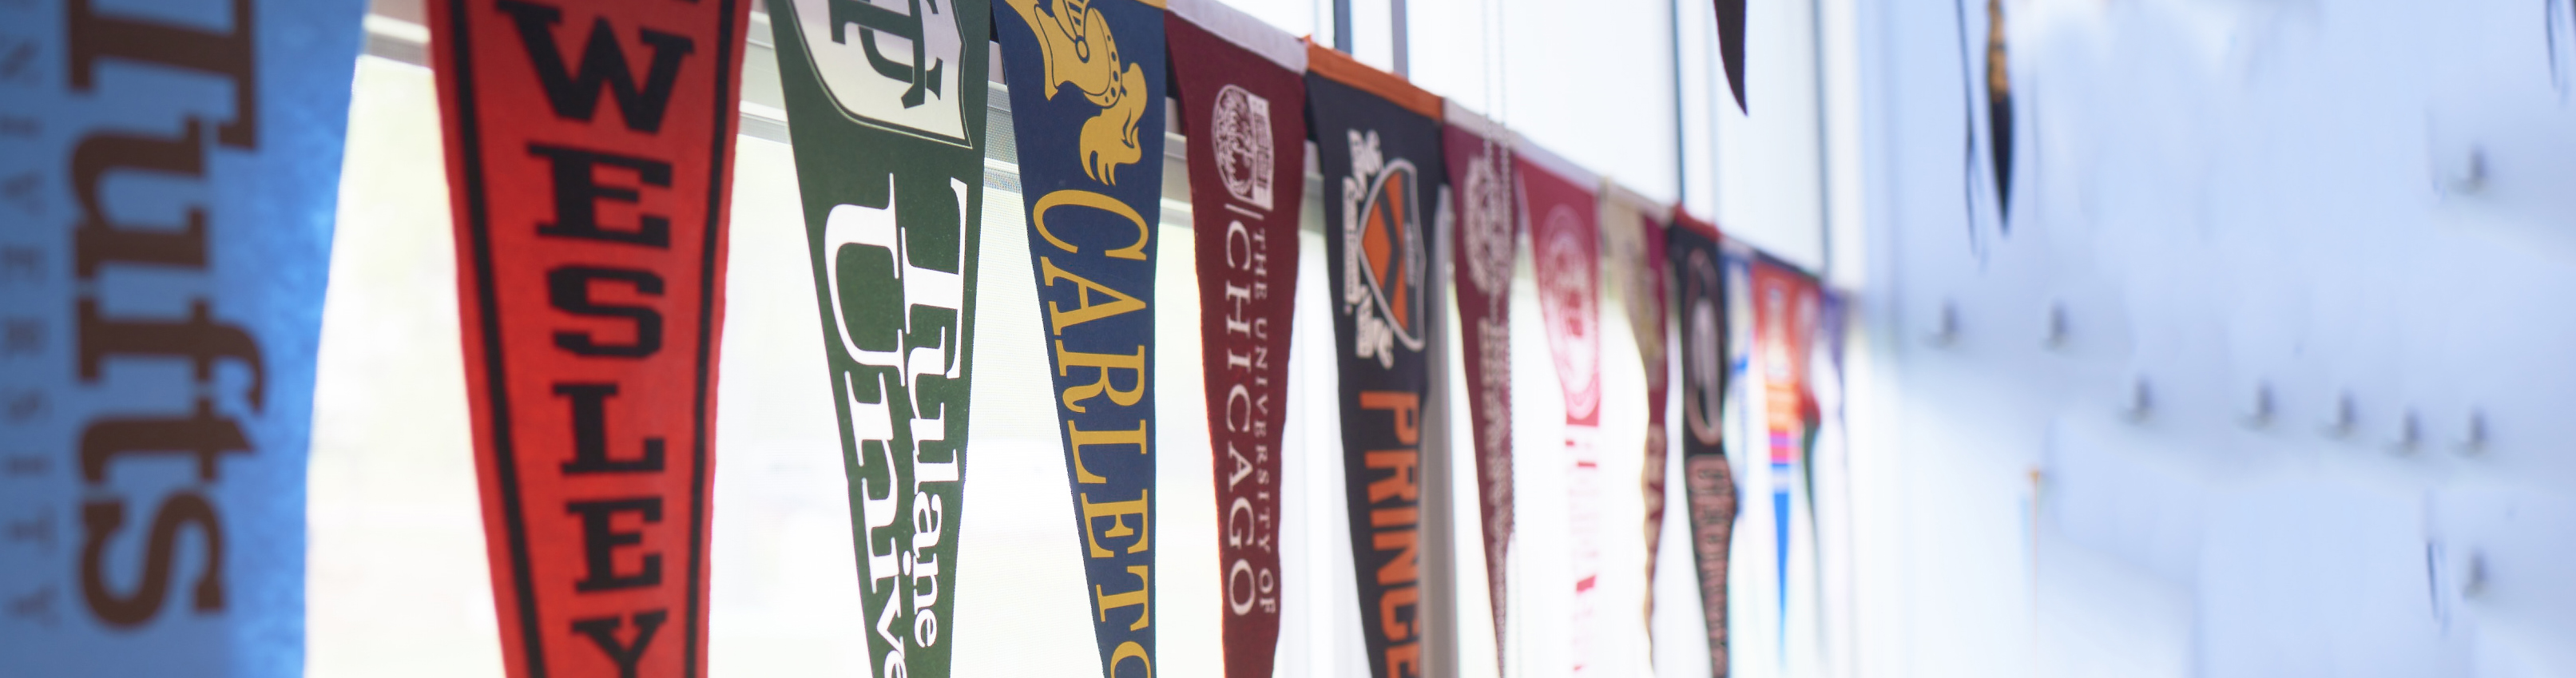 college pennants hanging in window